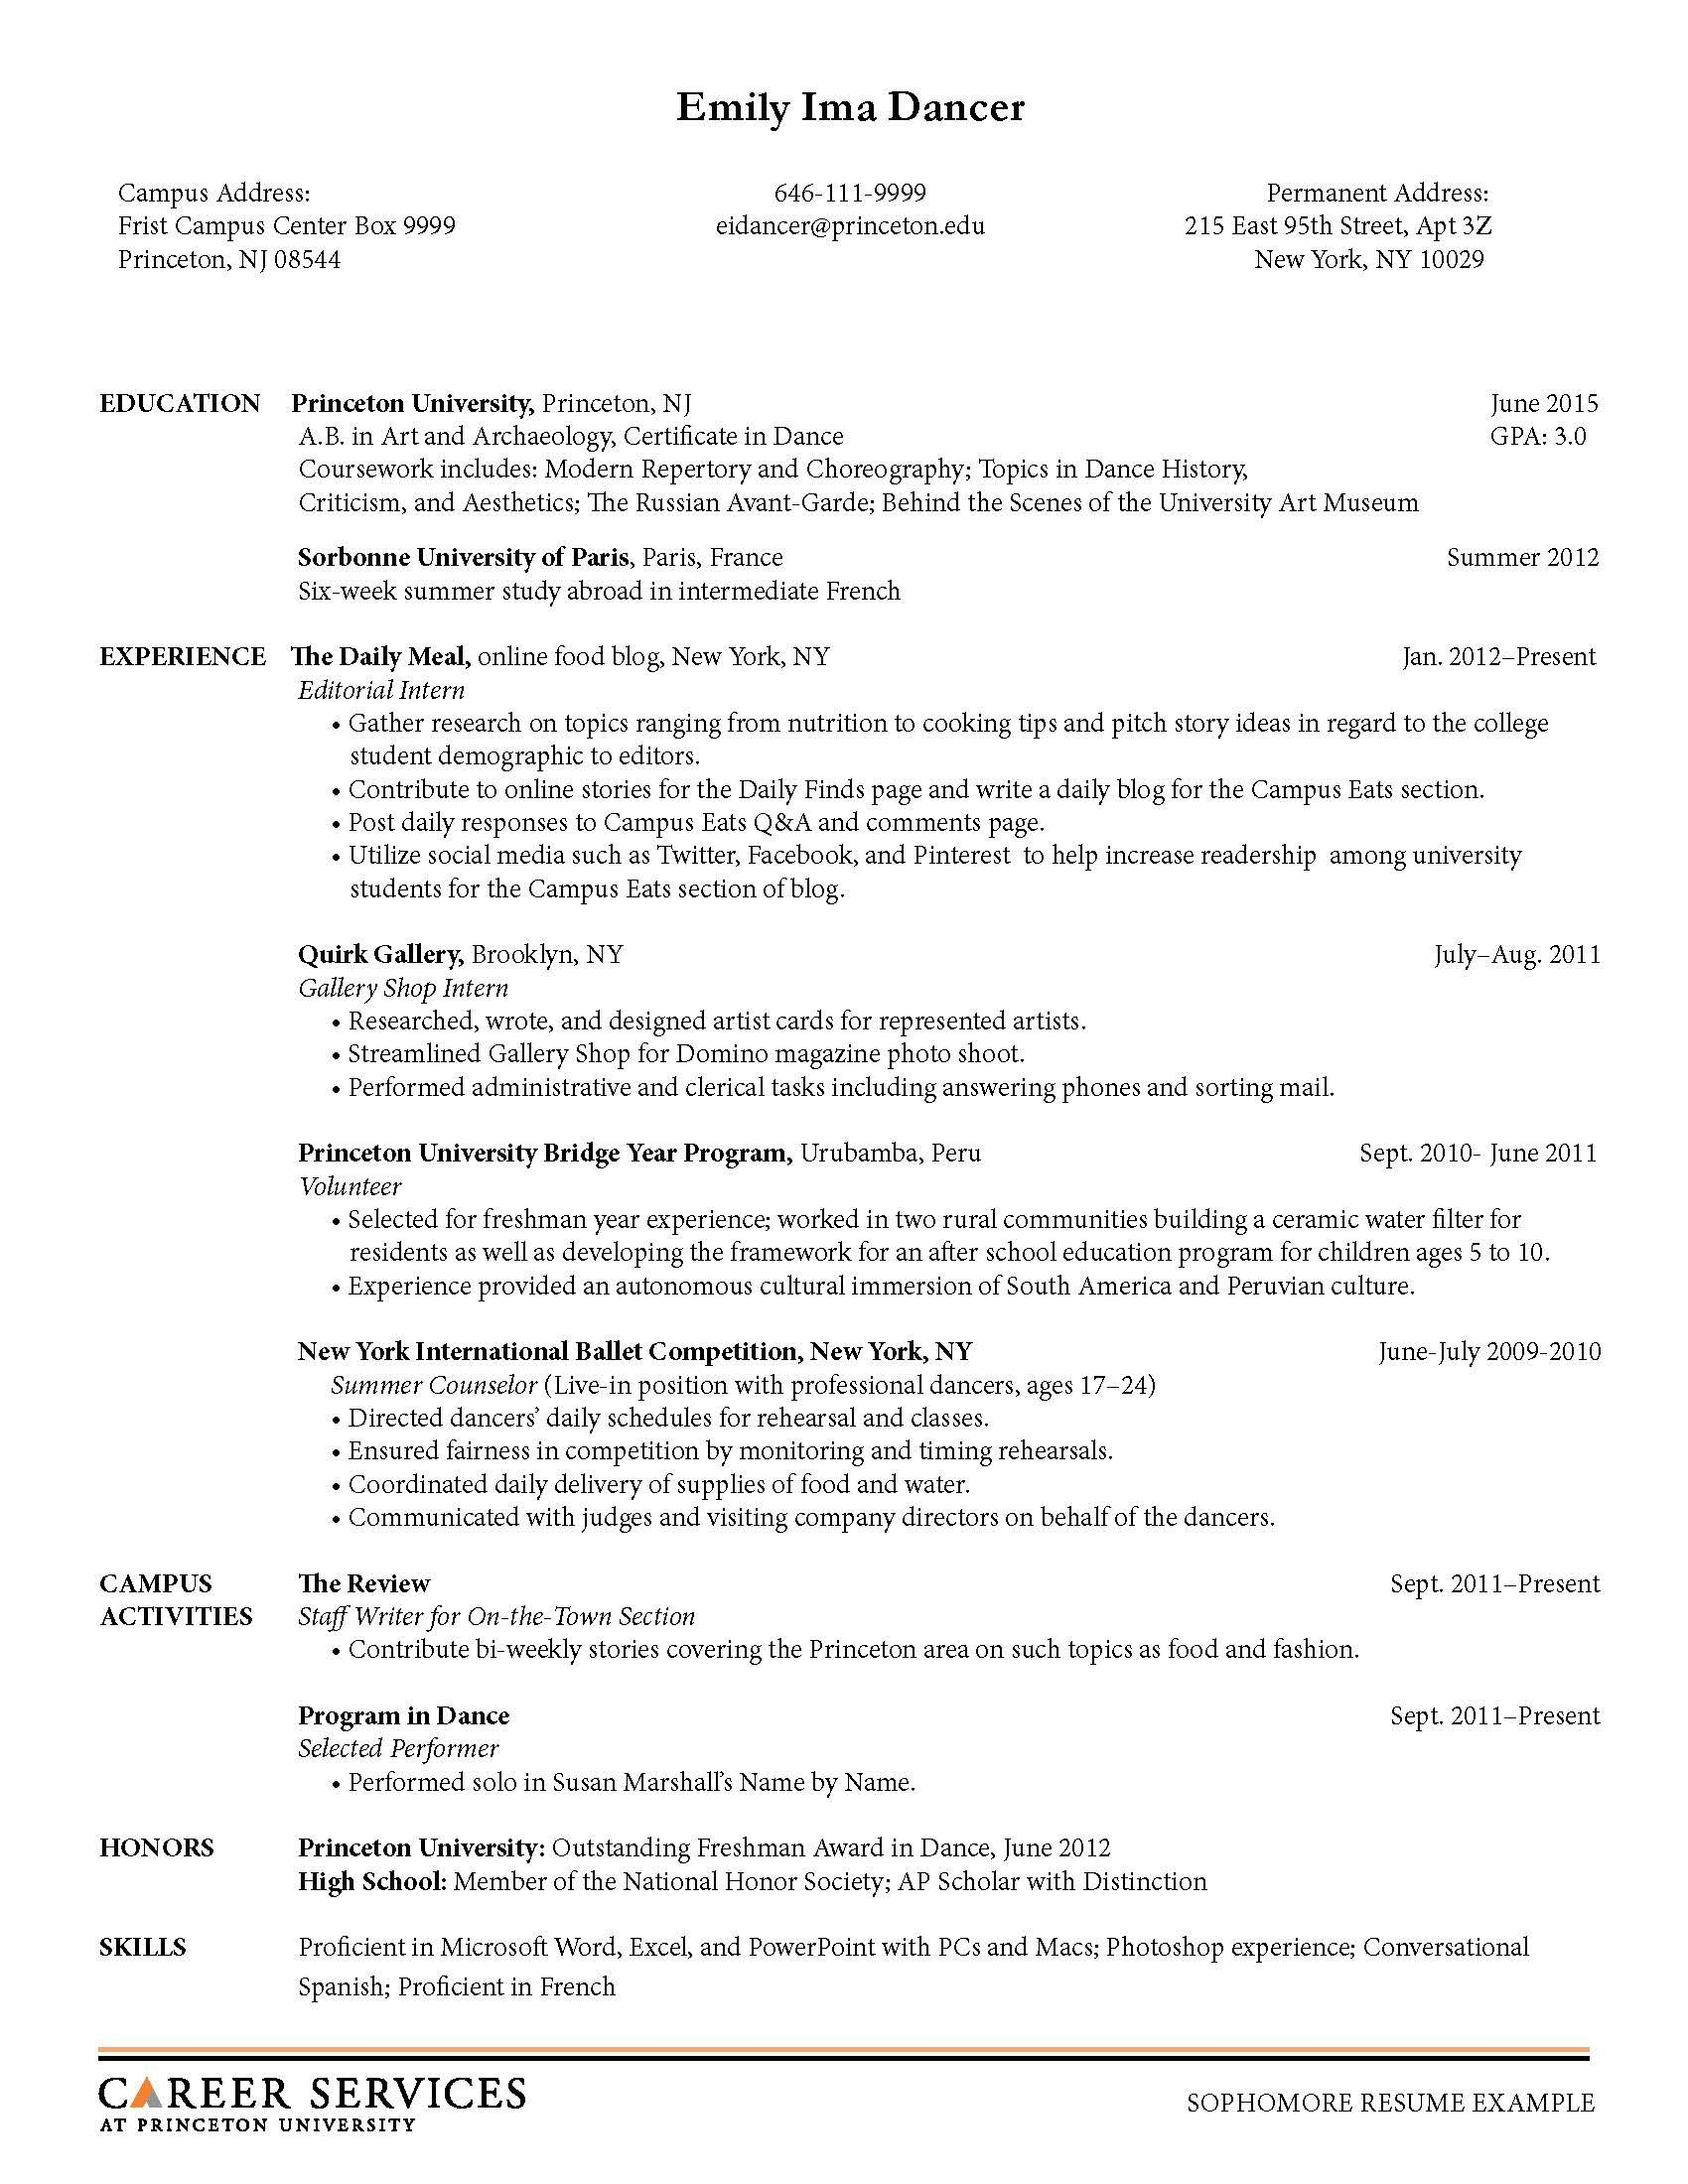 Opposenewapstandardsus  Personable Sample Resume Resume And Career On Pinterest With Goodlooking First Time Resume Examples Besides Resume Sample Doc Furthermore Resume For Graphic Designer With Alluring Electrician Apprentice Resume Also How To Send A Resume By Email In Addition Business Owner Resume Sample And Should I Use Resume Paper As Well As What To Have On A Resume Additionally Resume Professional Profile From Pinterestcom With Opposenewapstandardsus  Goodlooking Sample Resume Resume And Career On Pinterest With Alluring First Time Resume Examples Besides Resume Sample Doc Furthermore Resume For Graphic Designer And Personable Electrician Apprentice Resume Also How To Send A Resume By Email In Addition Business Owner Resume Sample From Pinterestcom